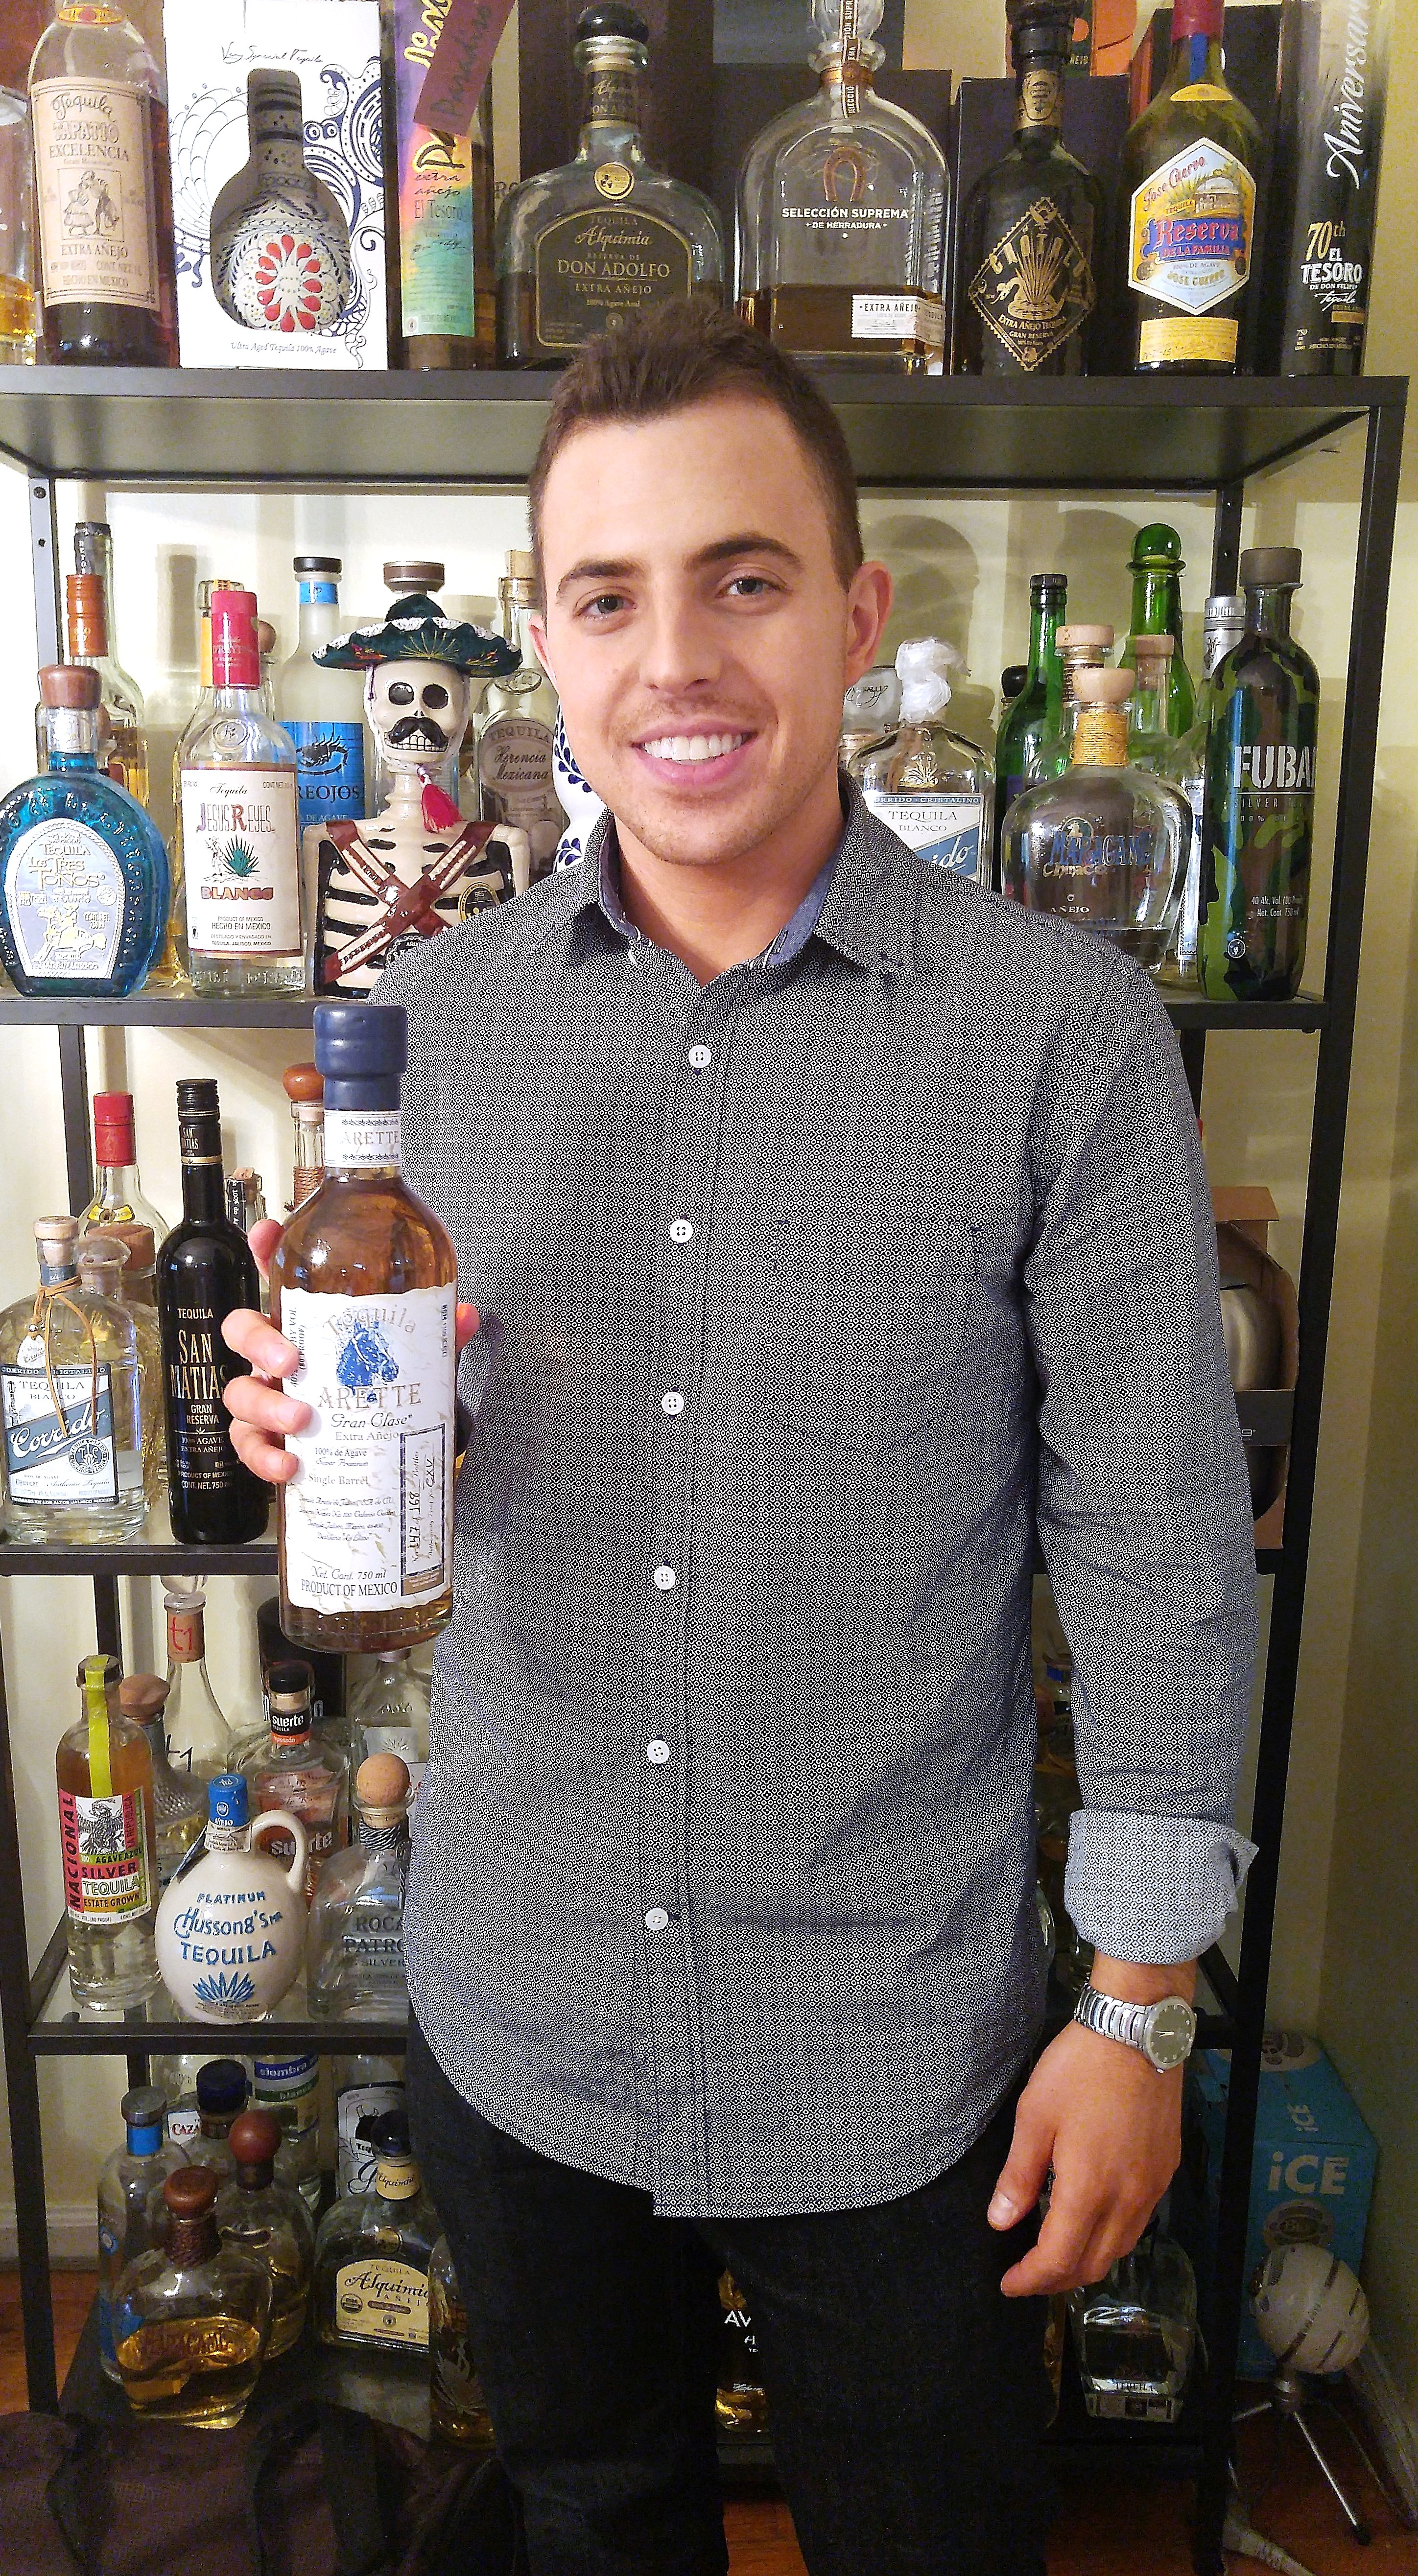 Arette's  'Suave  Artesanal' Tequila Rocks Out - The Blanco &  Extra Anejo are Standouts